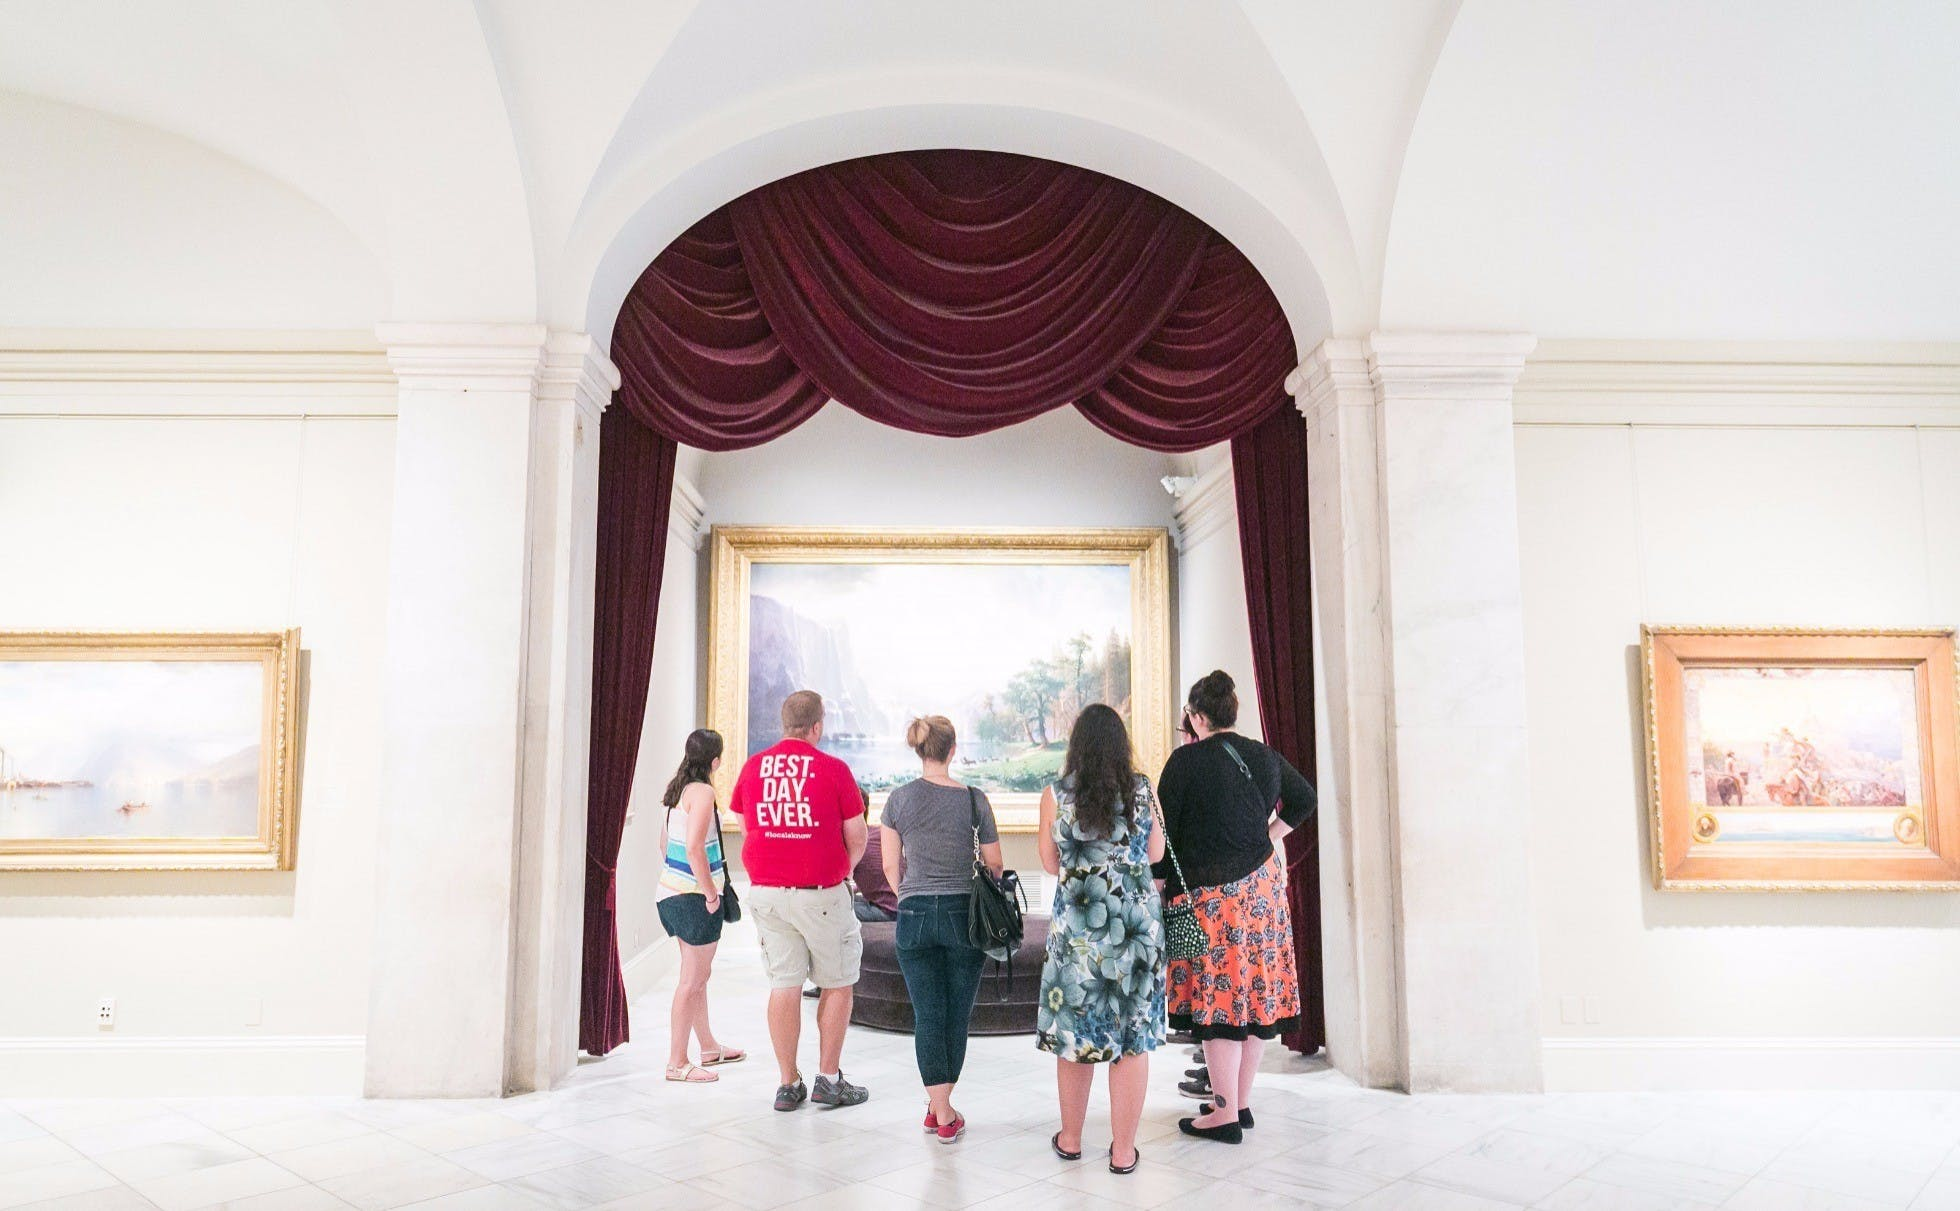 Total DC Tour: American Art & DC Unveiled - Tour Photo 1 of 8